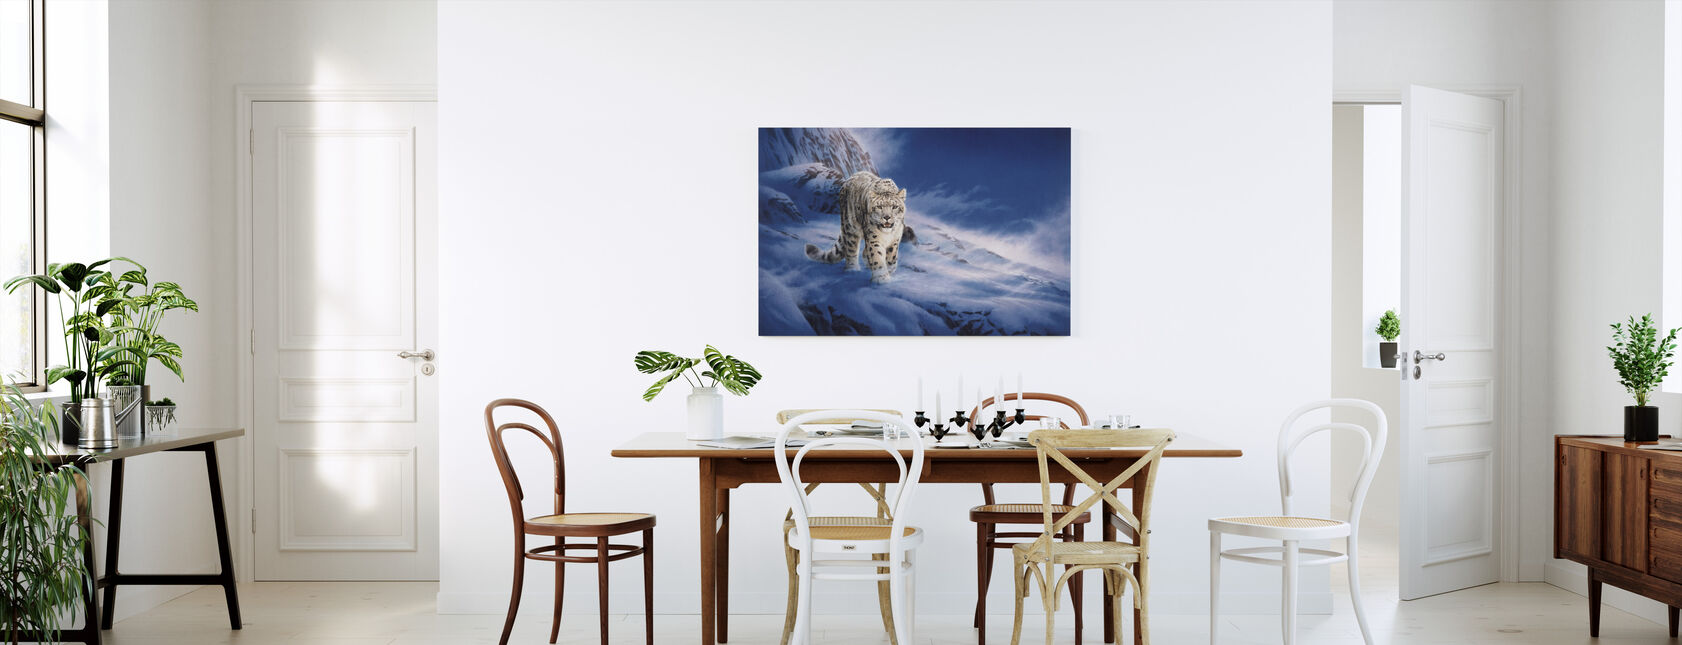 Snow Leopard - Canvas print - Kitchen